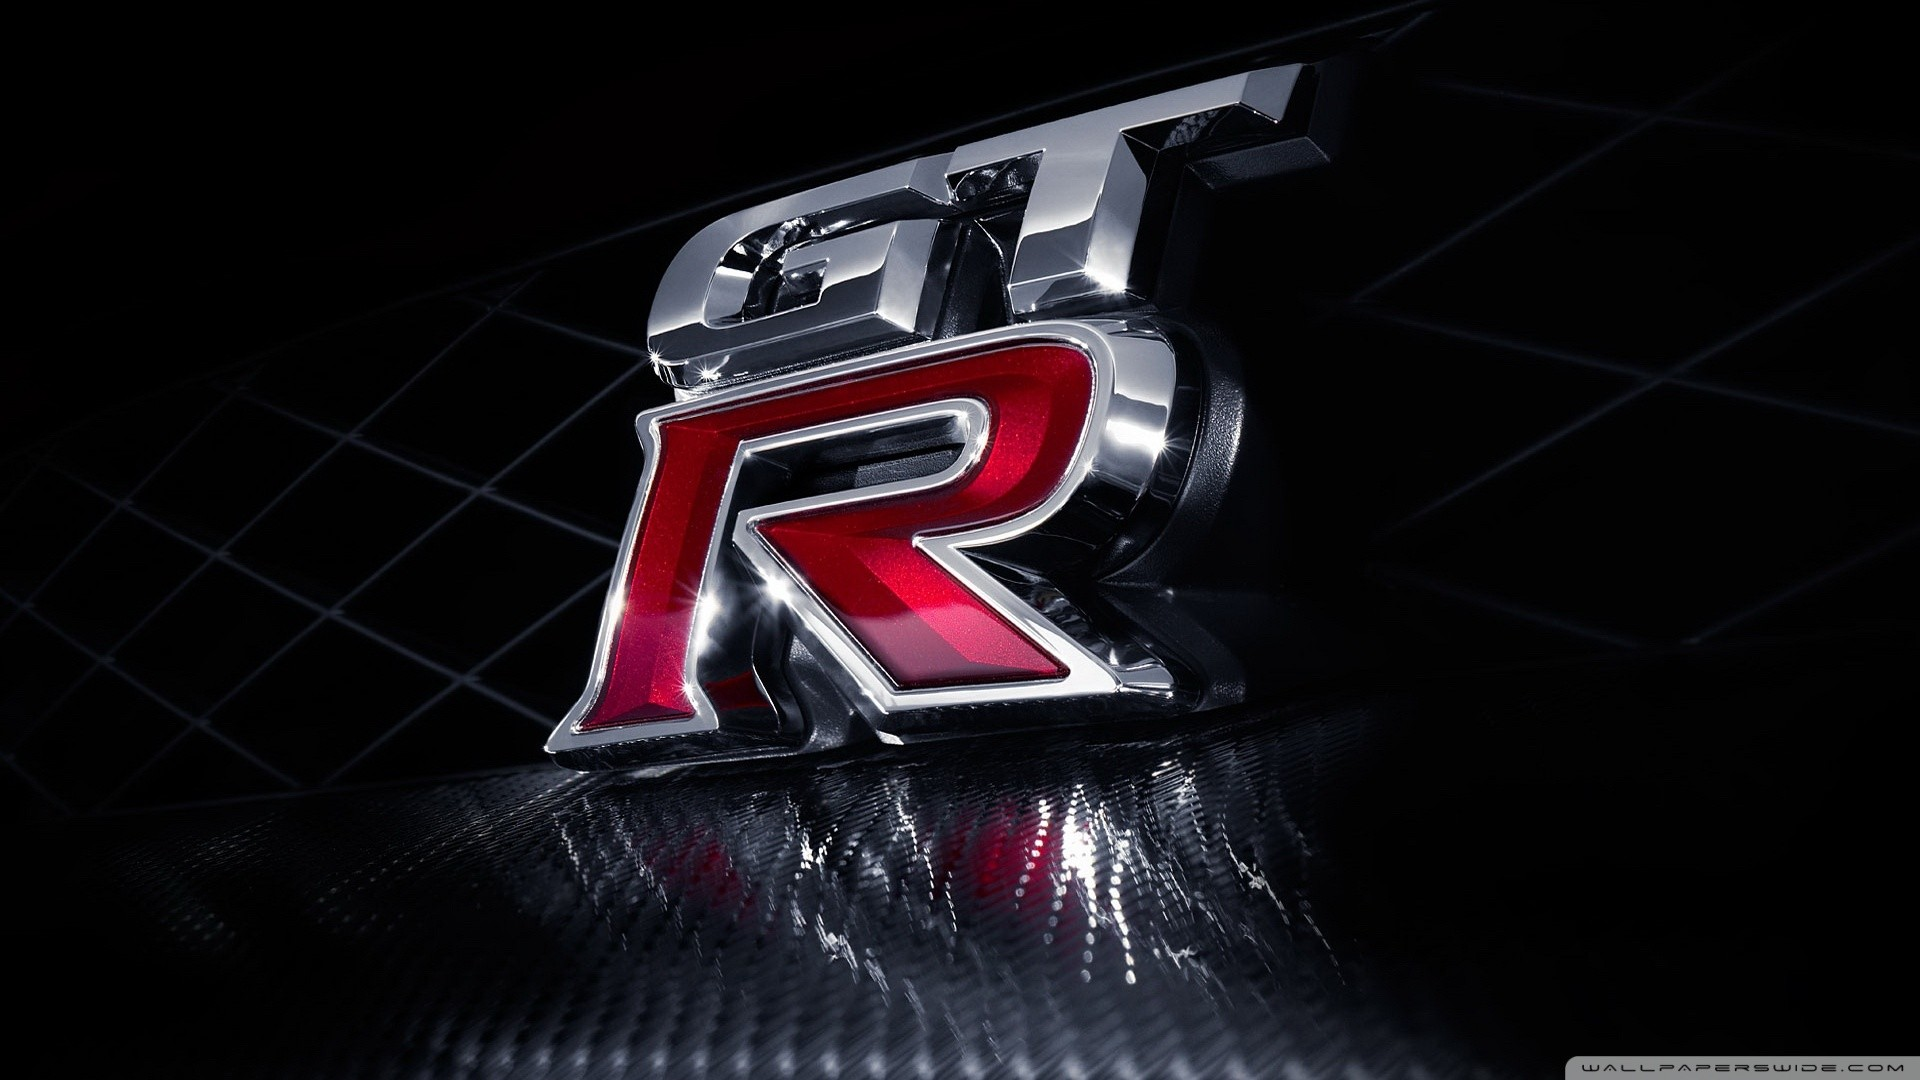 GTR Logo Wallpaper HD